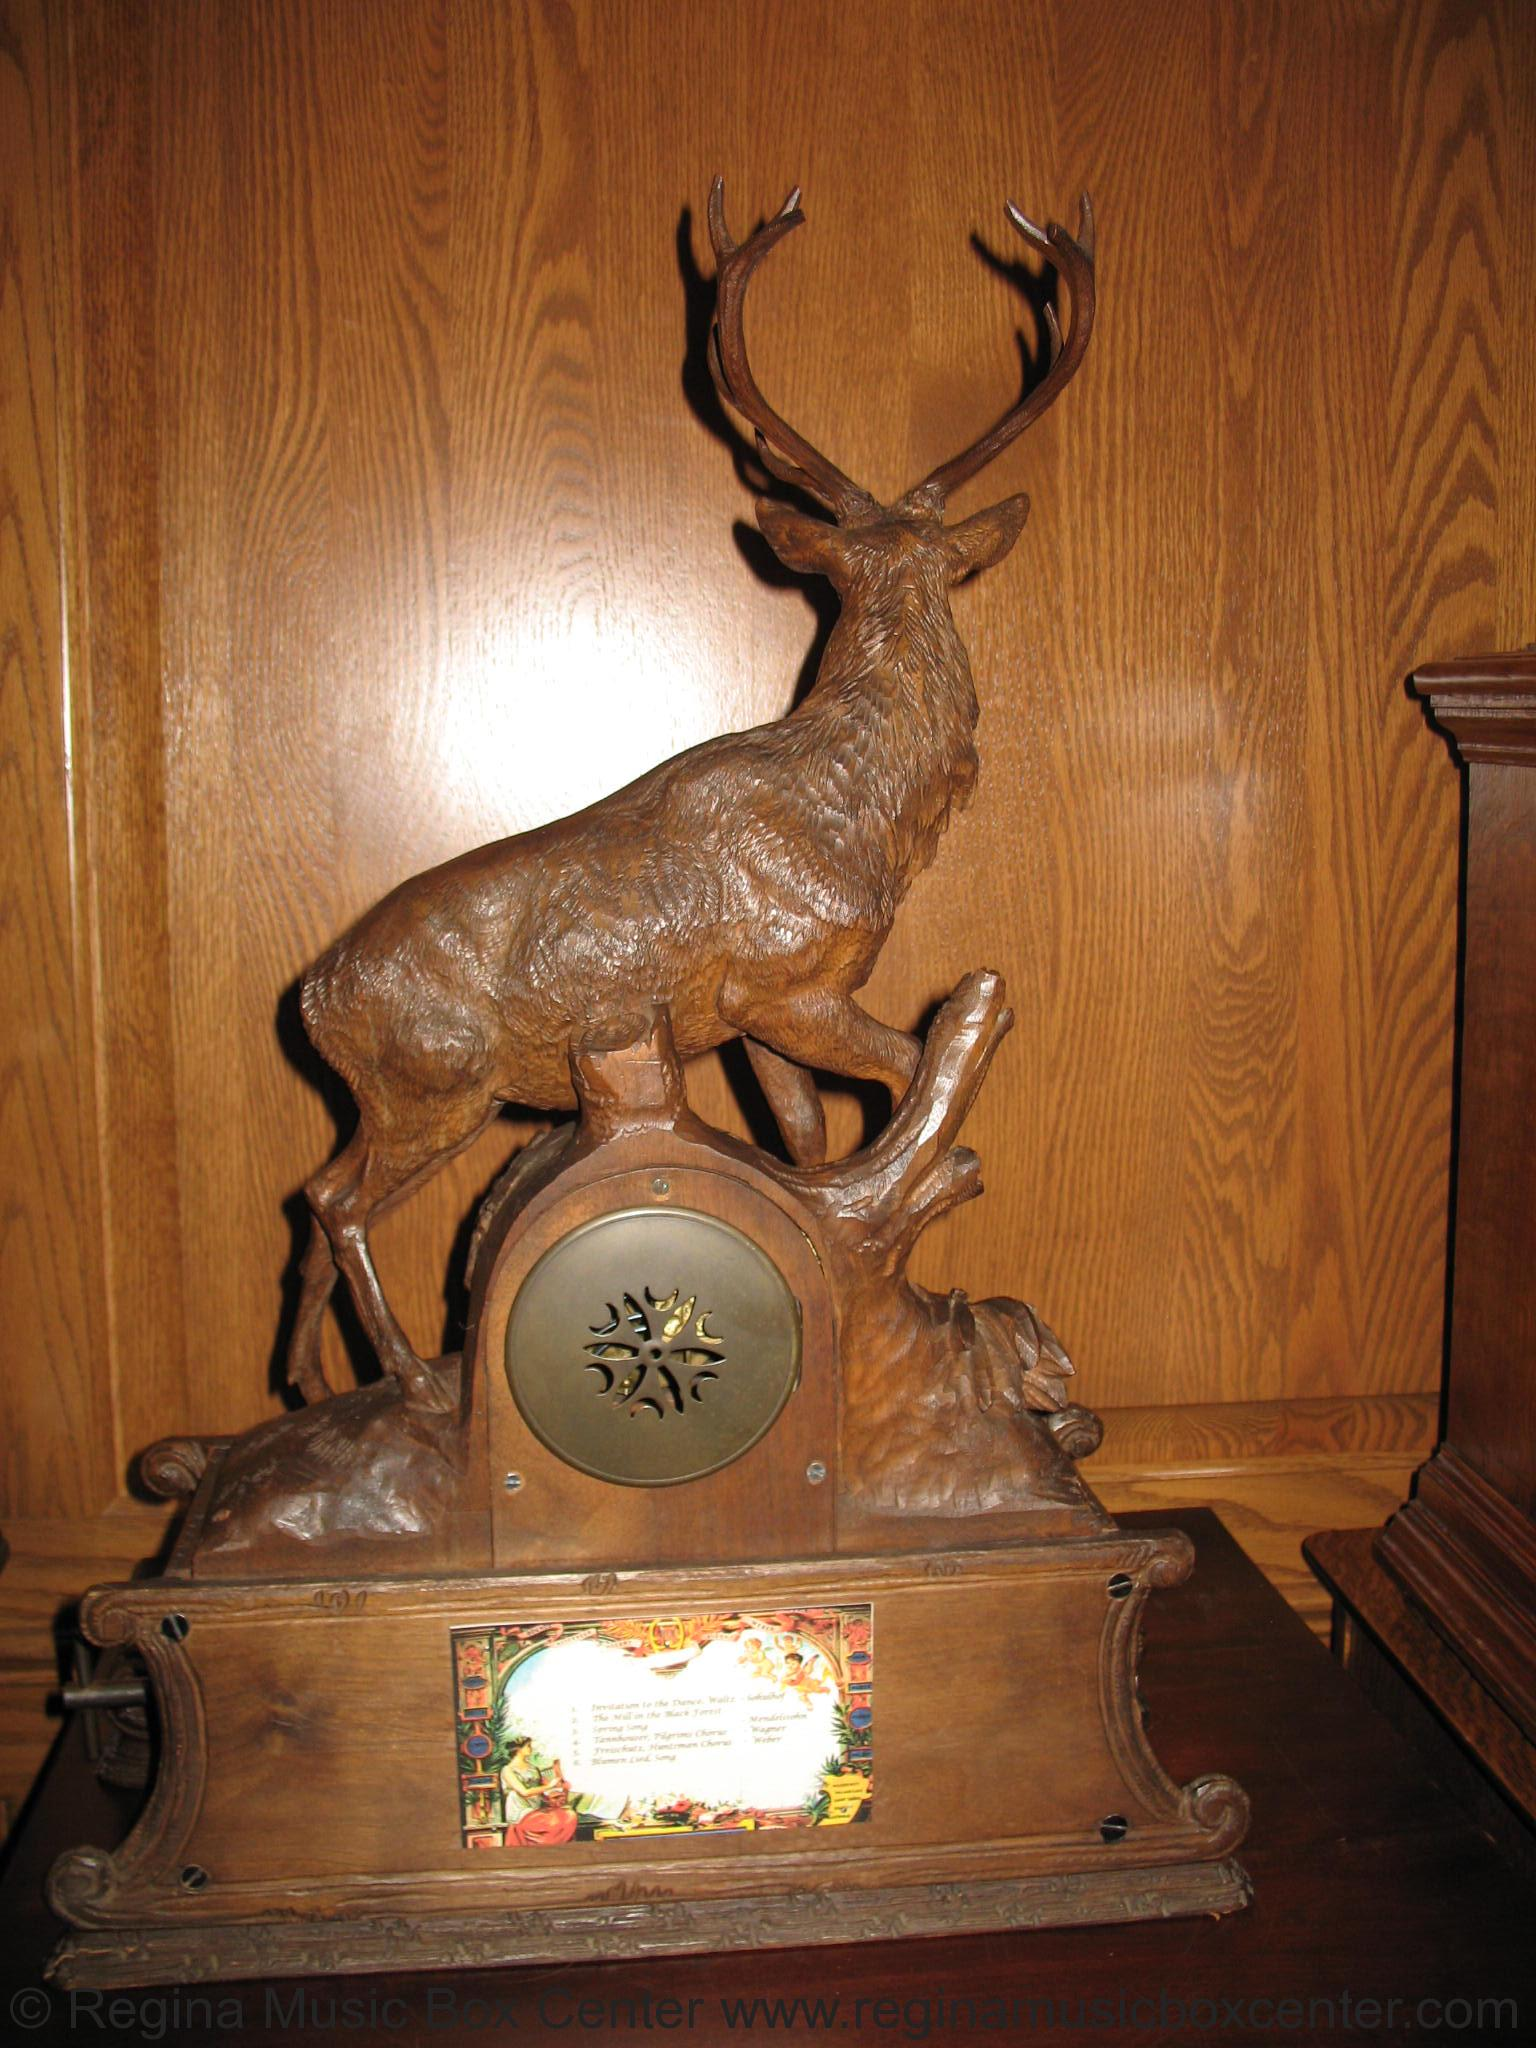 Look Up Number >> Regina Music Box Center: BLACK FOREST HEAVILY CARVED CLOCK ...